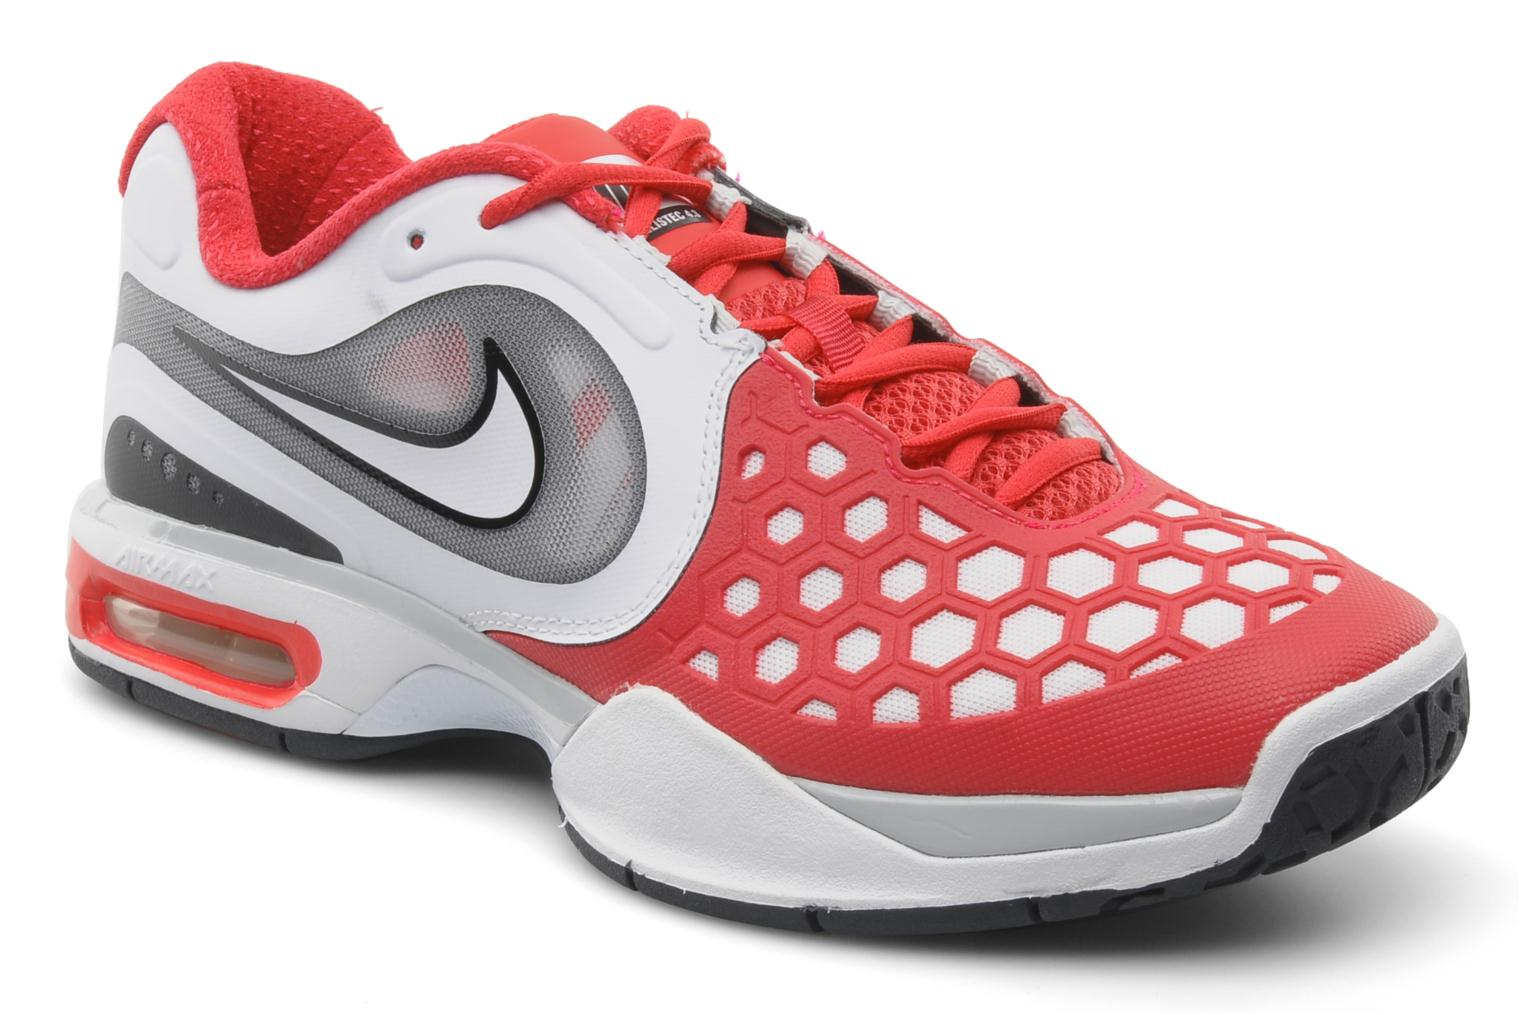 check out 367fe 1733e ... get sport shoes nike air max courtballistec 4.3 red detailed view pair  view 5c315 06495